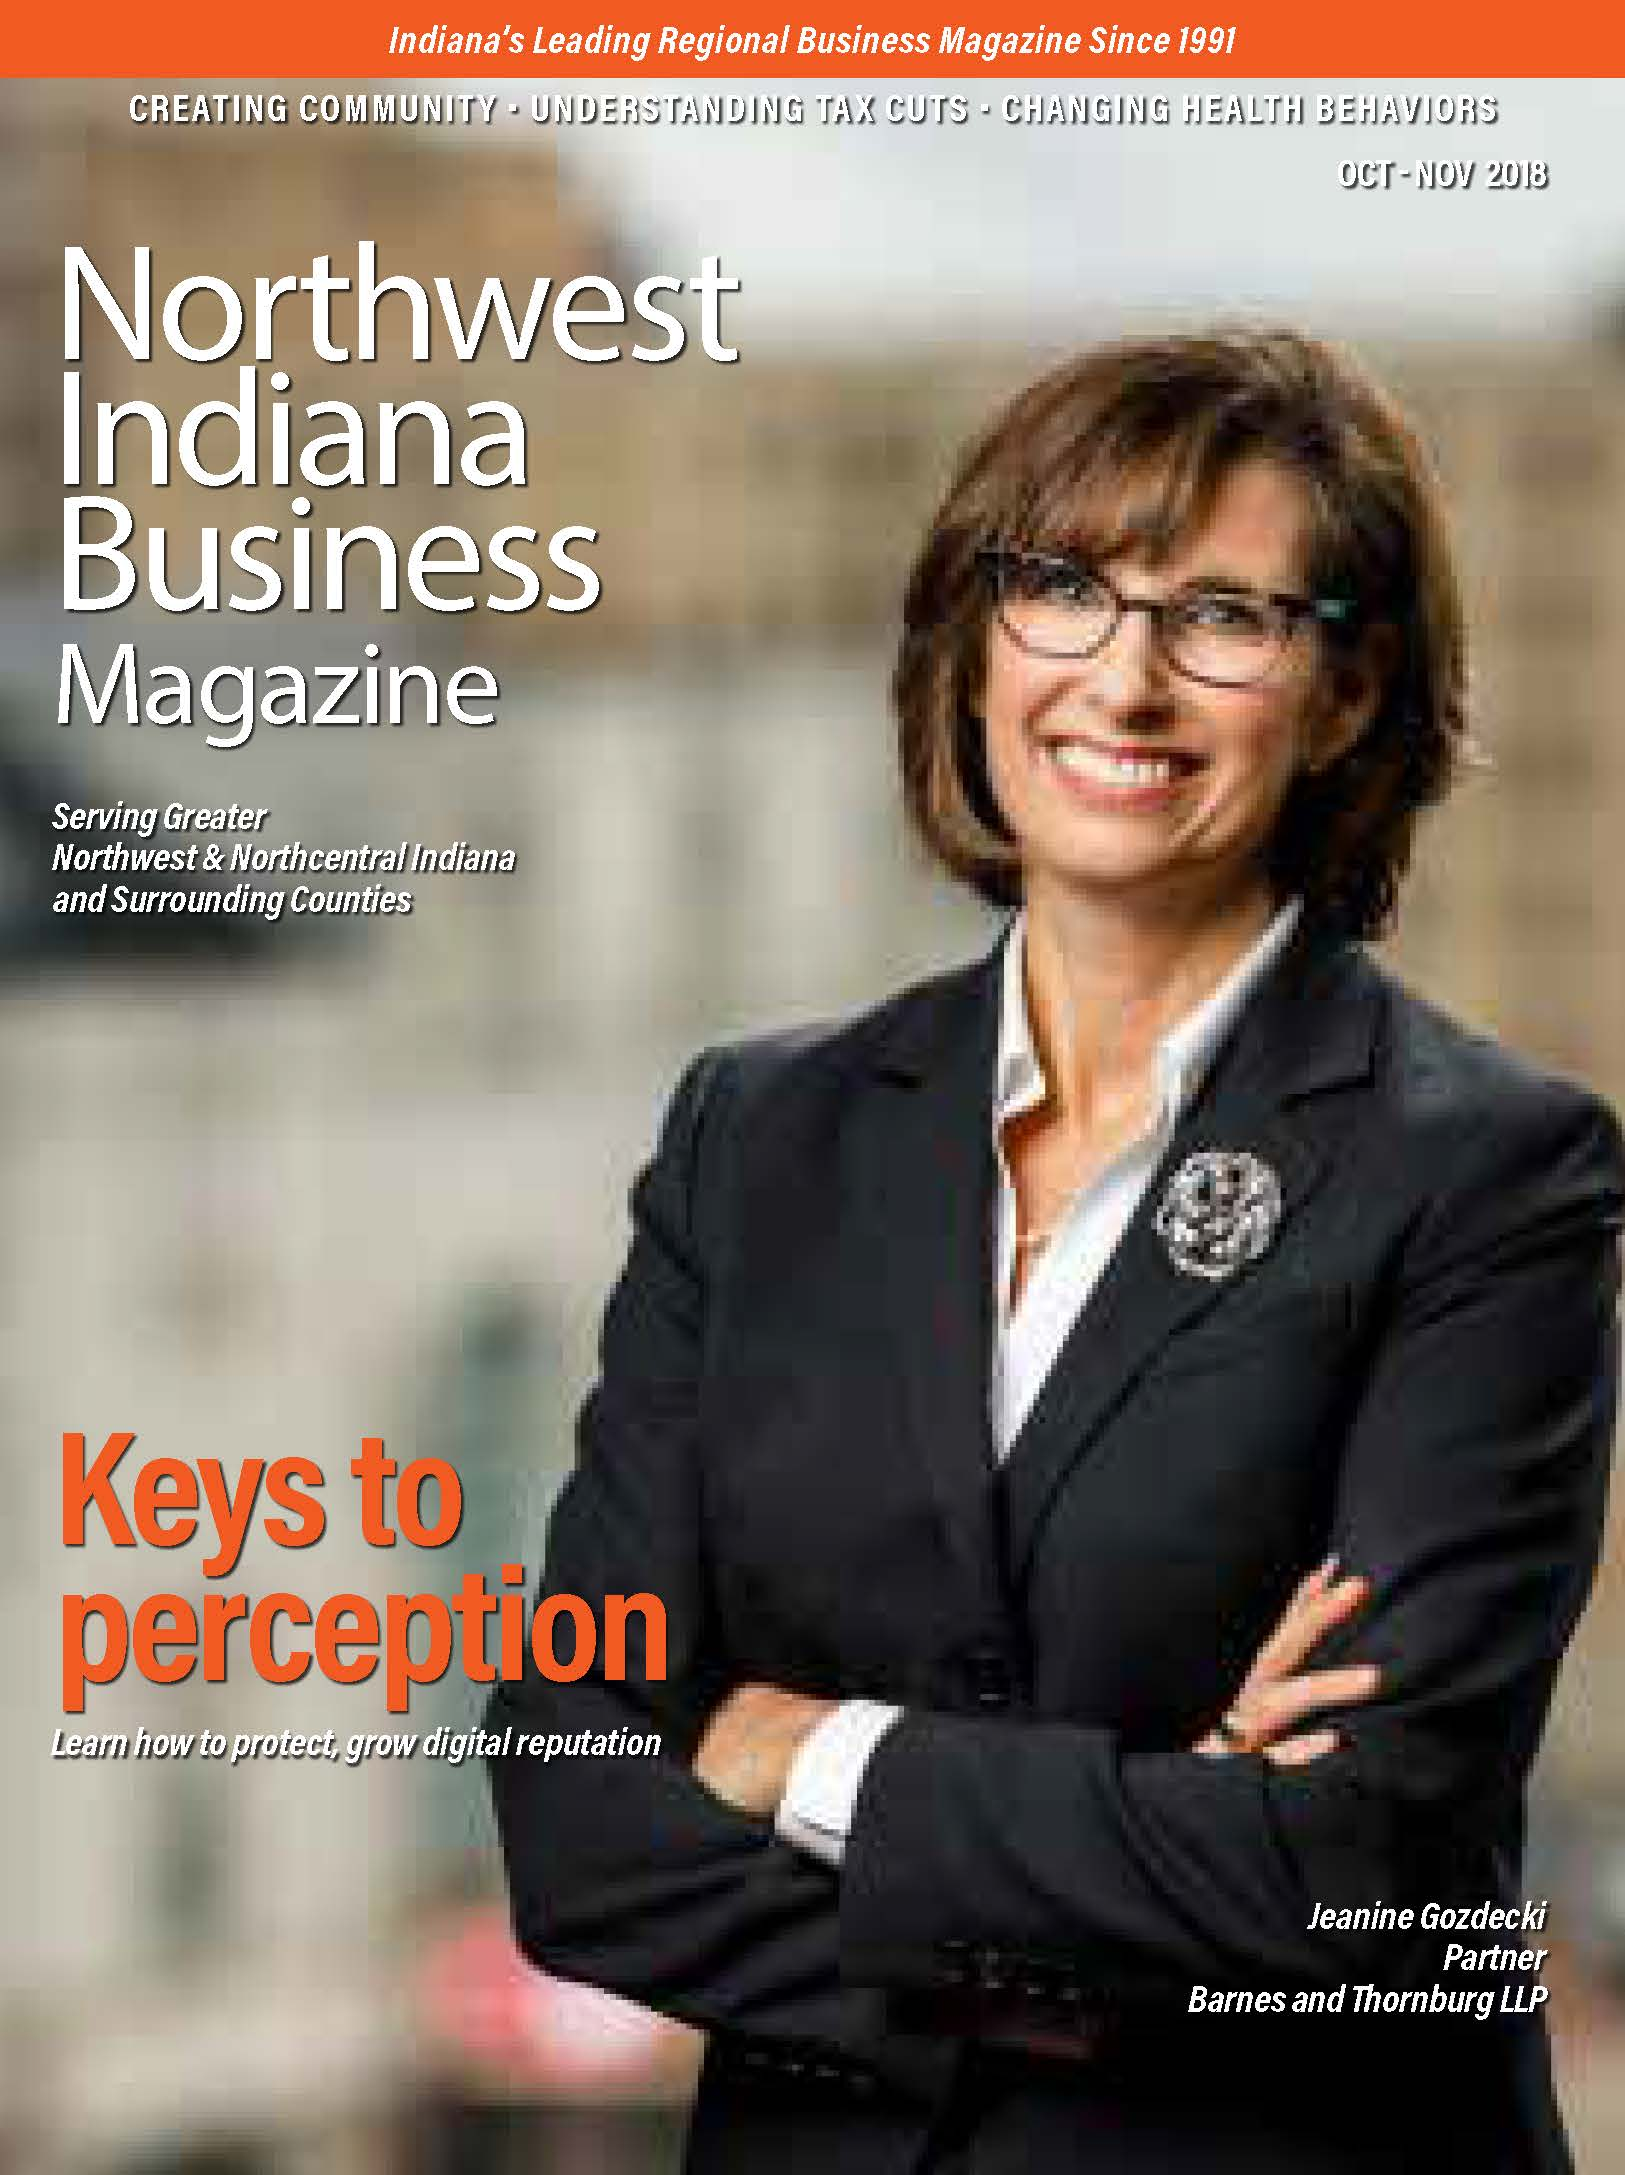 Northwest Indiana Business Magazine - Oct-Nov 2018 issue